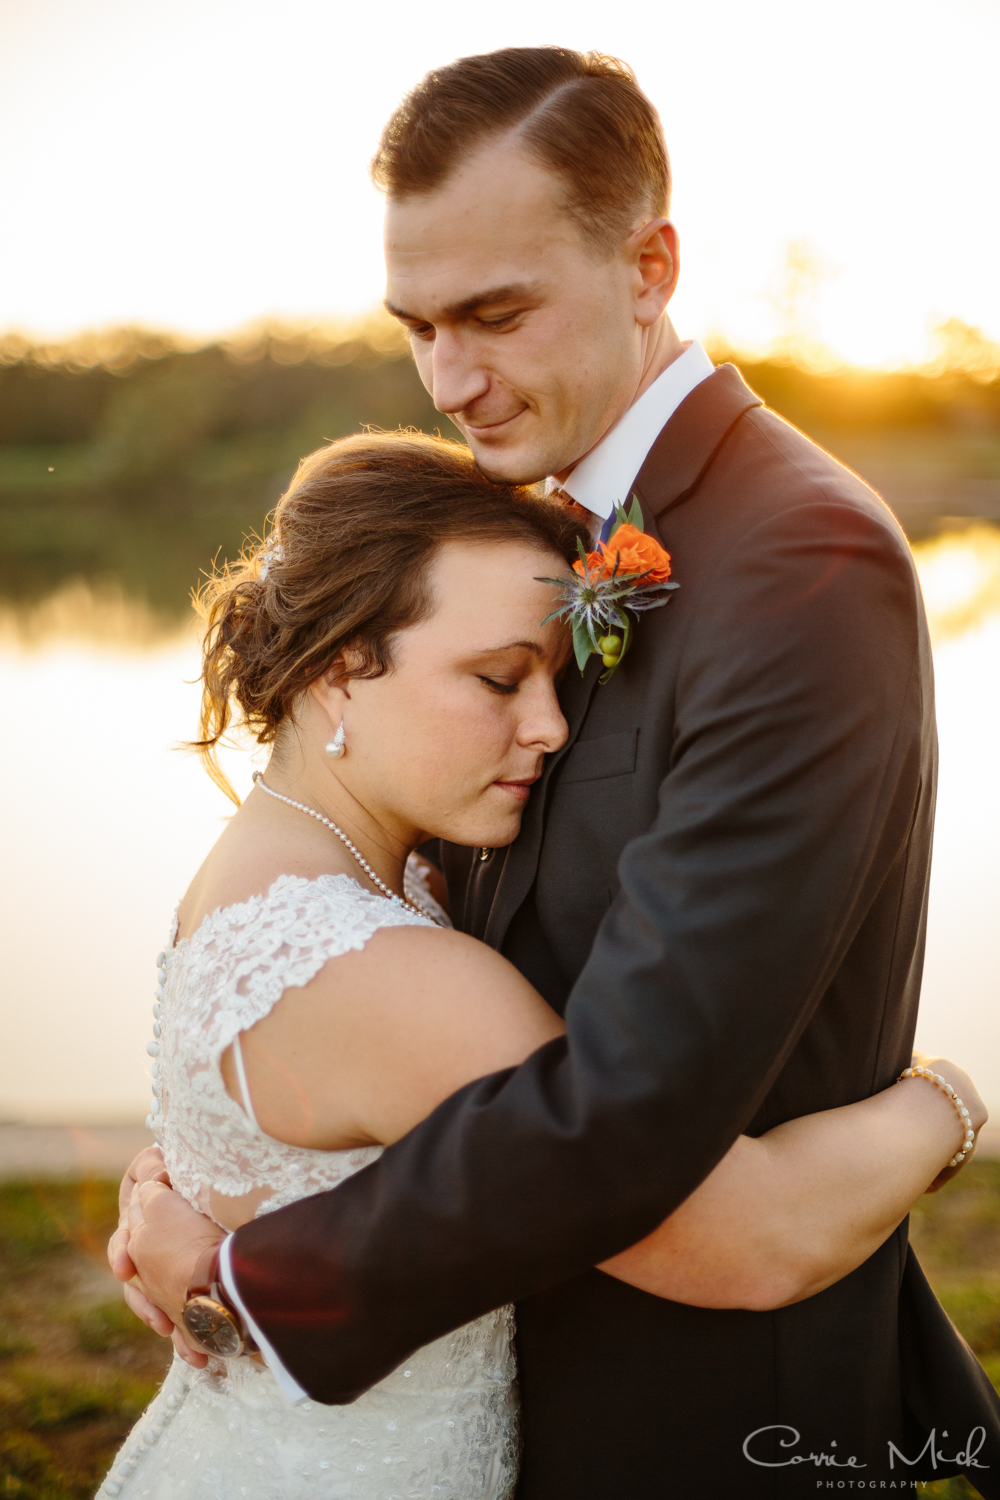 Lake Lyndsay Wedding - Portland, Oregon Photographer - Corrie Mick Photography-436.jpg